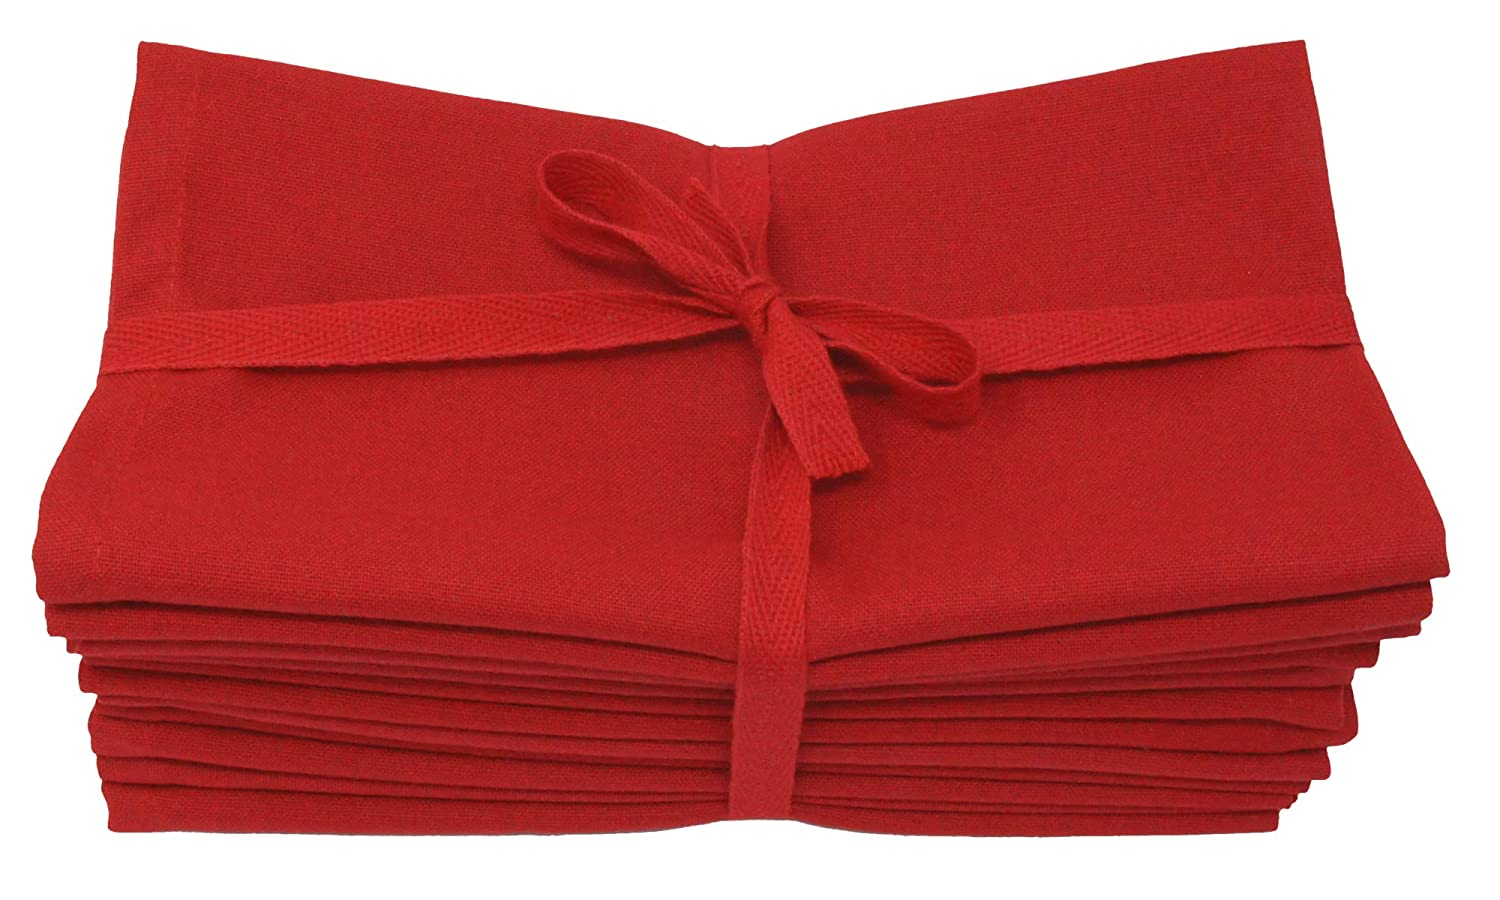 Aunti Em's Kitchen Red Cotton Dinner Napkins Cloth 12 Pack 20x20 100% Natural Oversized Bulk Linens for Dinner, Events, Weddings, Set of 12, Festive Red